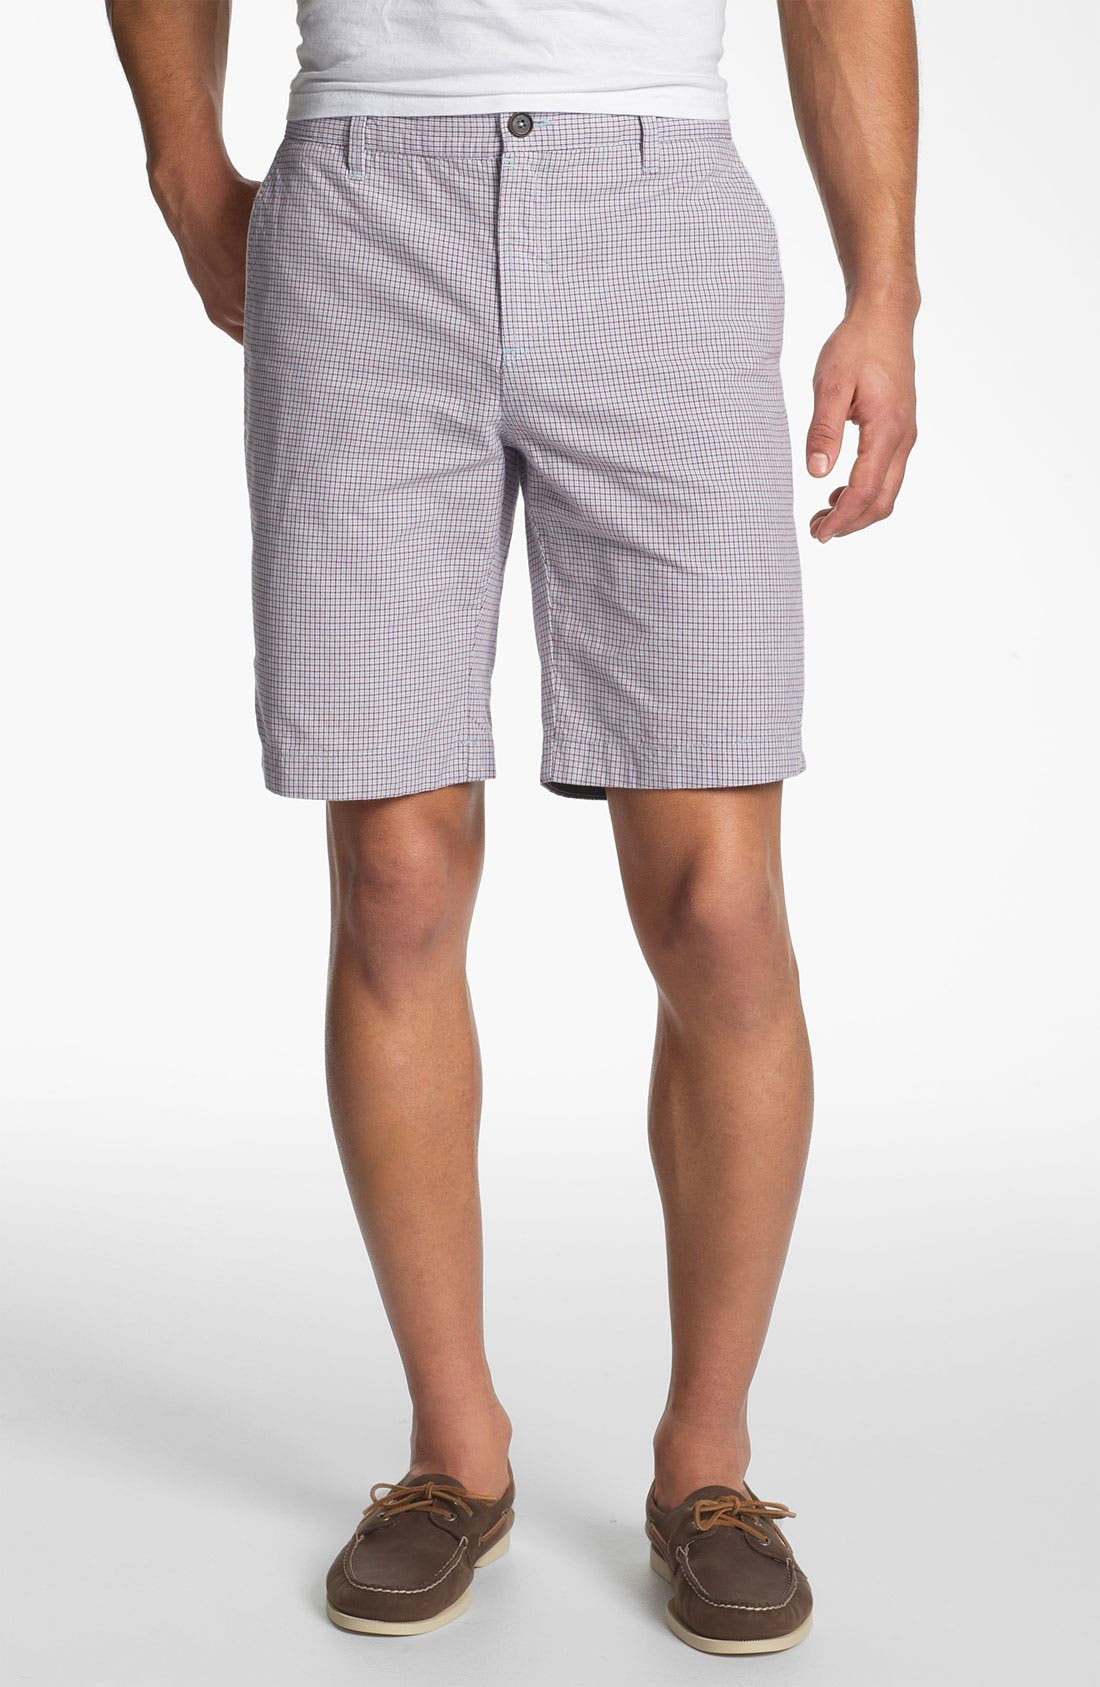 Alternate Image 1 Selected - Ted Baker London 'Rewfus' Shorts